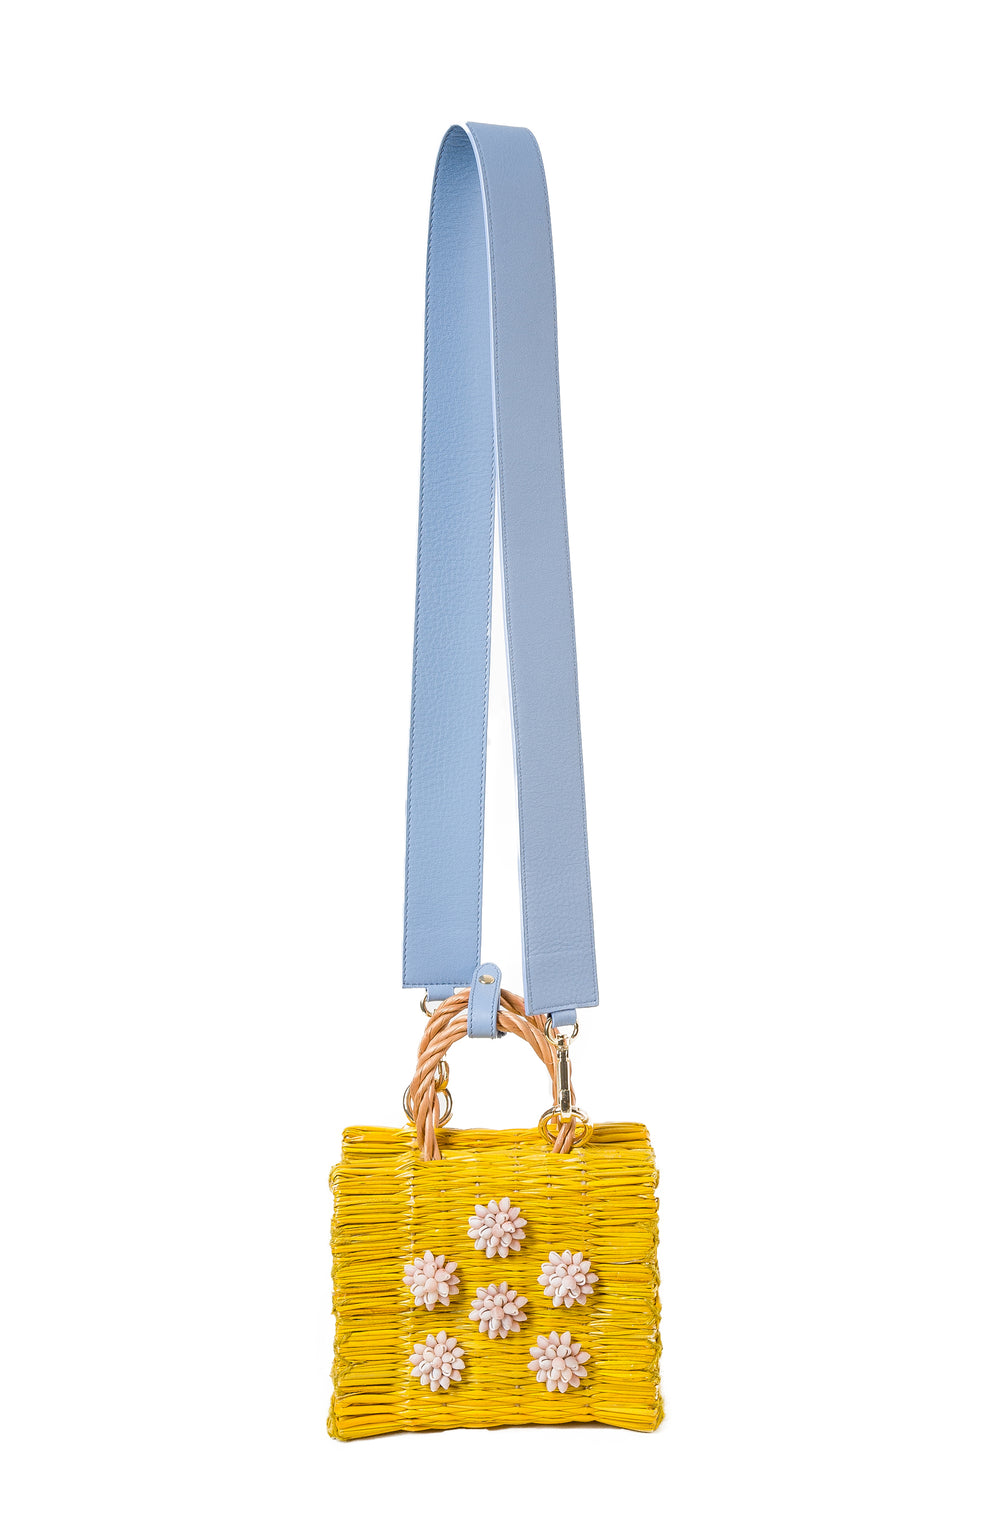 Celeste baby blue leather with strap